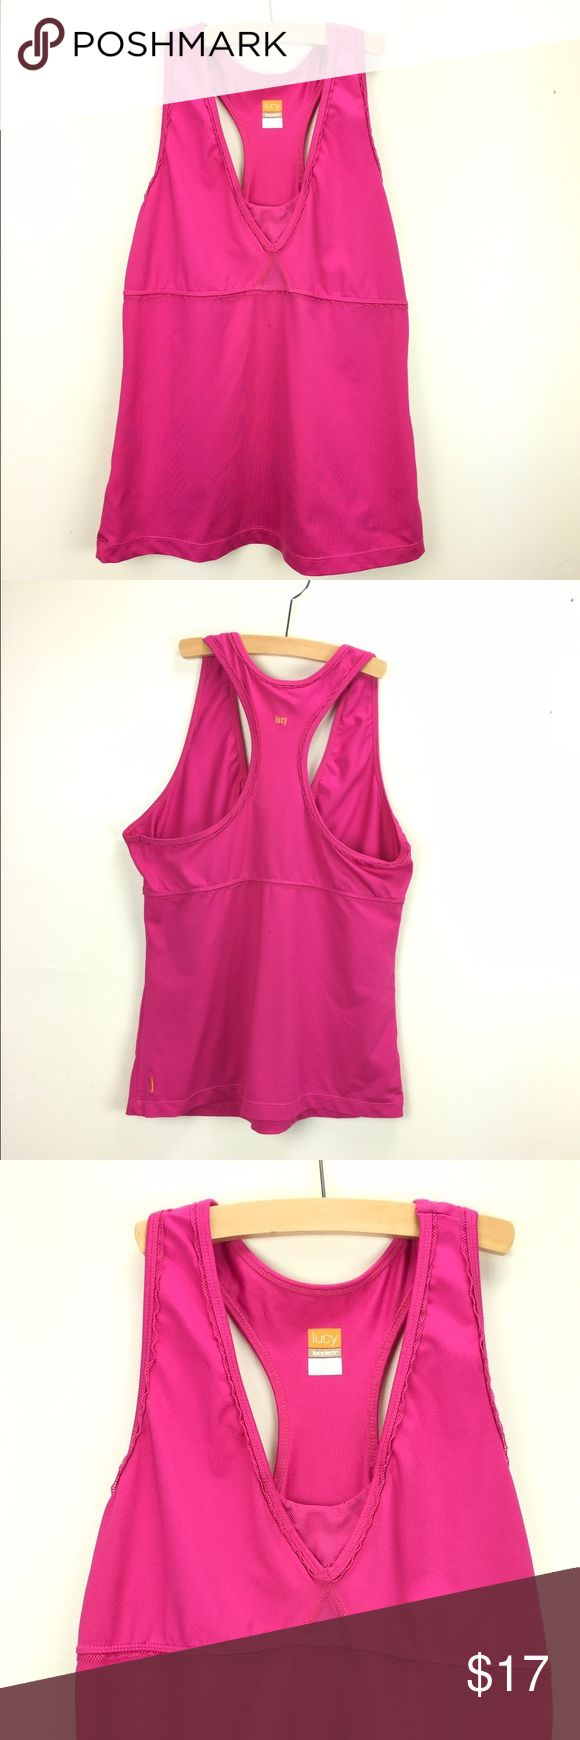 Lucy Athletic Tank Top Lucy Athletic / Sport Tank Top.  Bright pink/fuchsia. Size Medium. Ruffled trim hem. Minimal support. Definitely More of a Top than an athletic bra. Great used condition. Top shows some signs of wear as in the material is not brand new tight and a tad of fading. Still perfect to add to your sporty look. Thanks! Lucy Tops Tank Tops